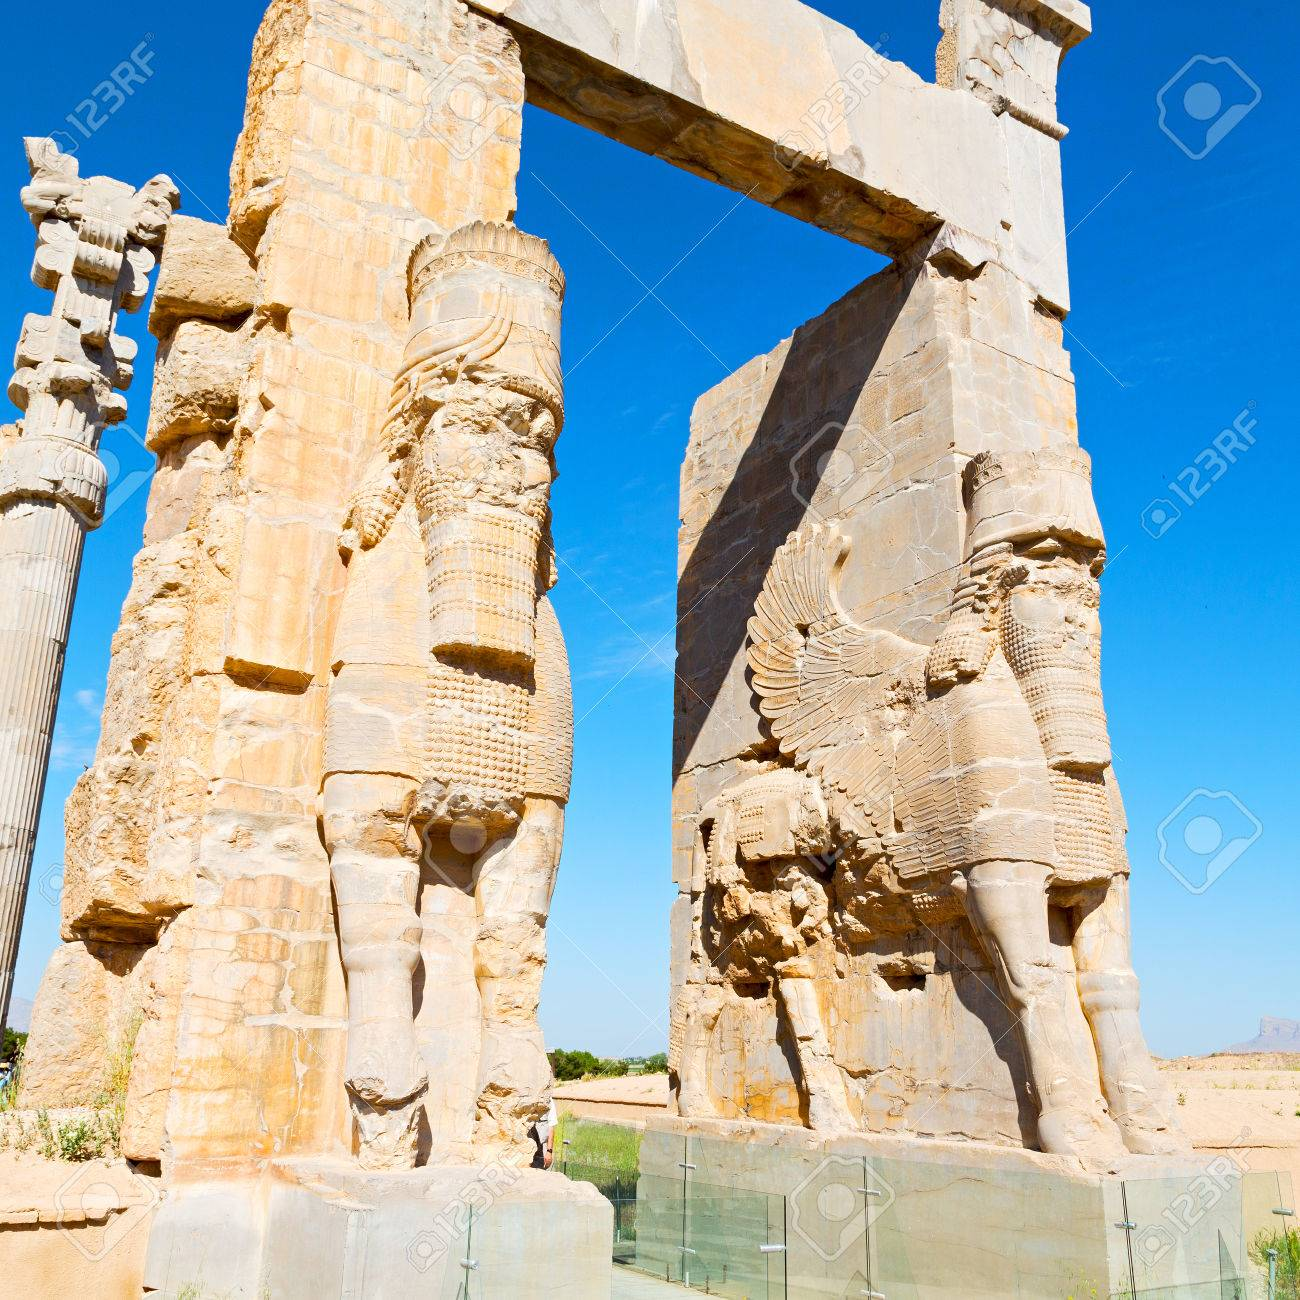 Blur In Iran Persepolis The Old Ruins Historical Destination Stock Photo Picture And Royalty Free Image Image 77827714